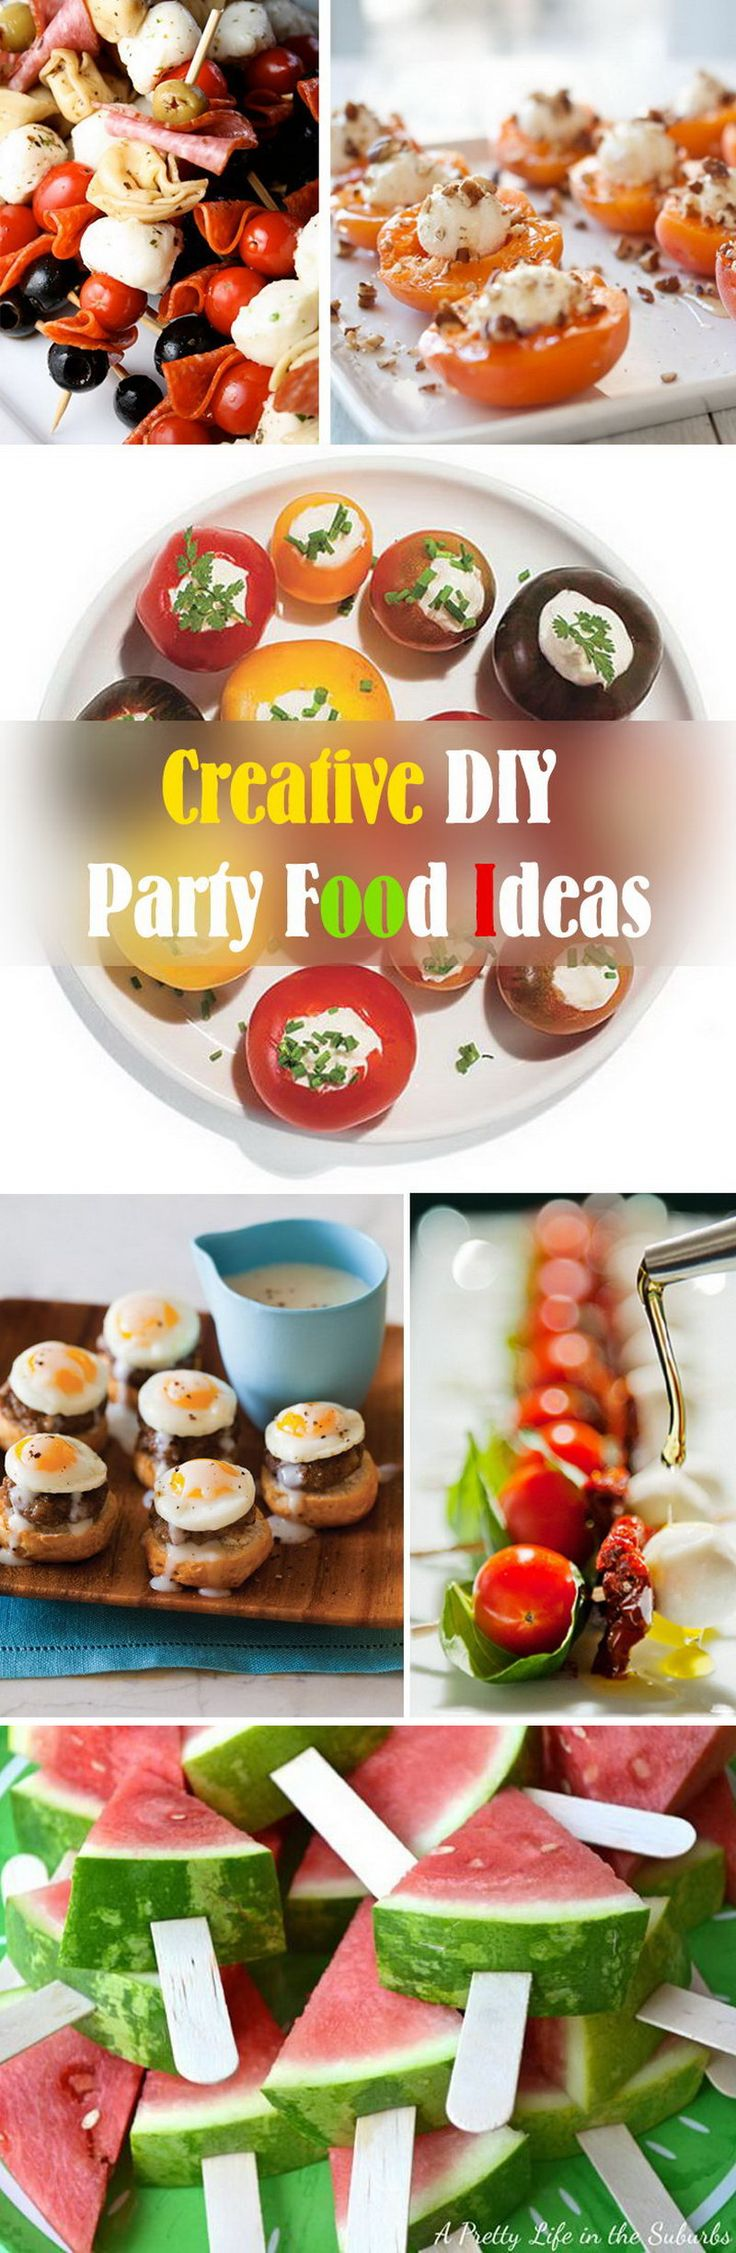 Creative DIY Party Food Ideas